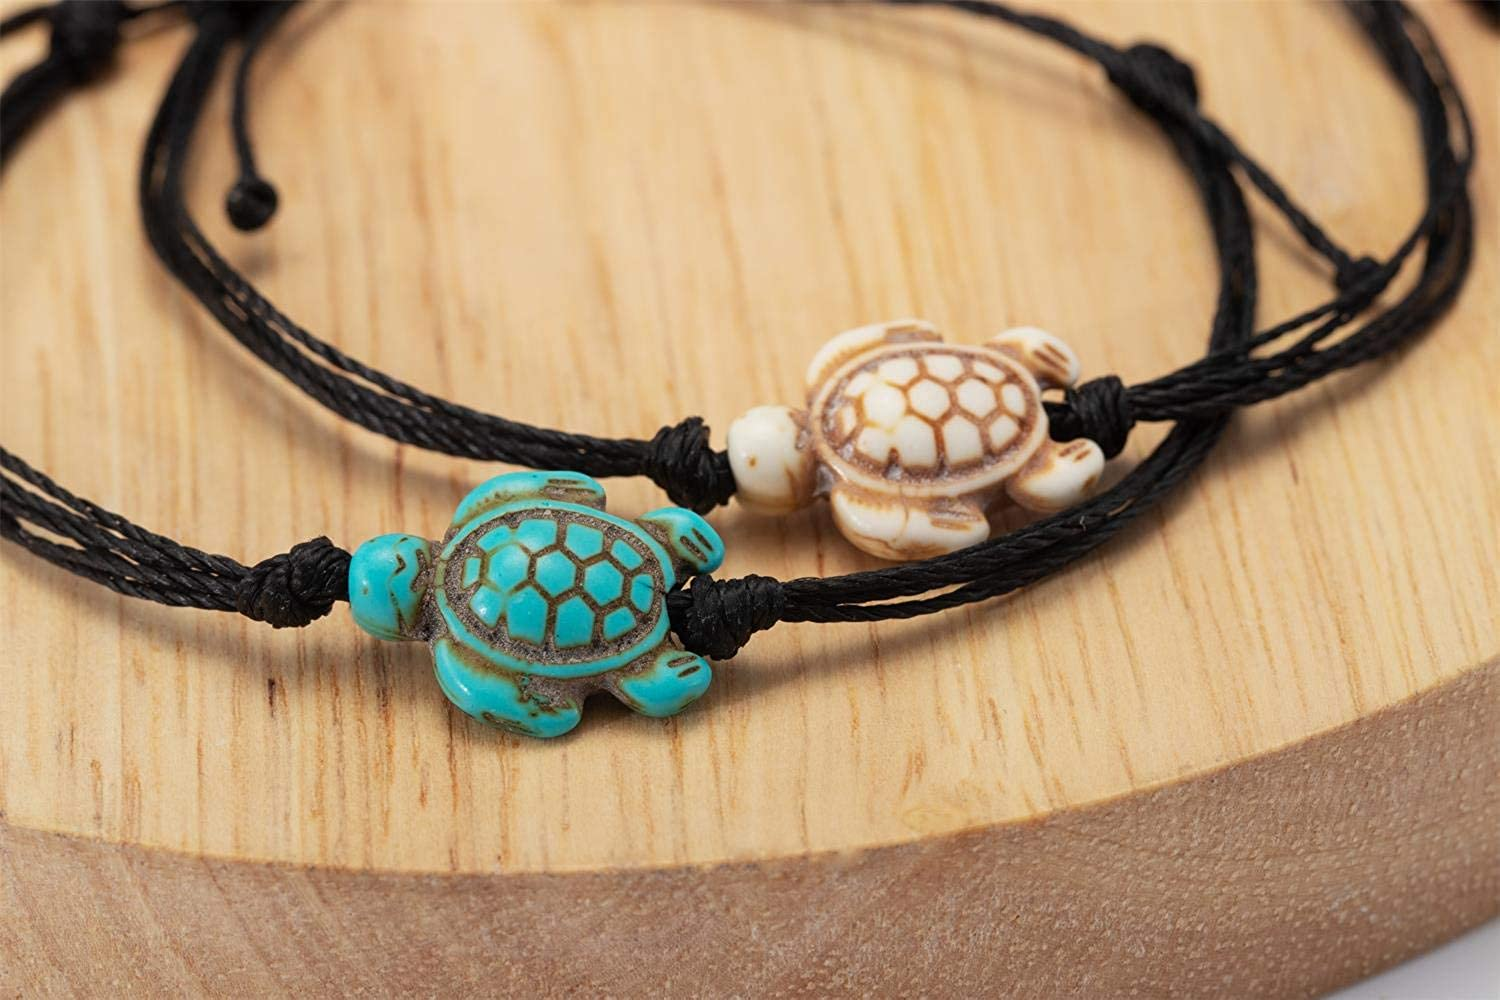 wowshow 2 pcs Sea Turtle Bracelet for Girls Best Friend Relationship Matching Bracelet Gifts